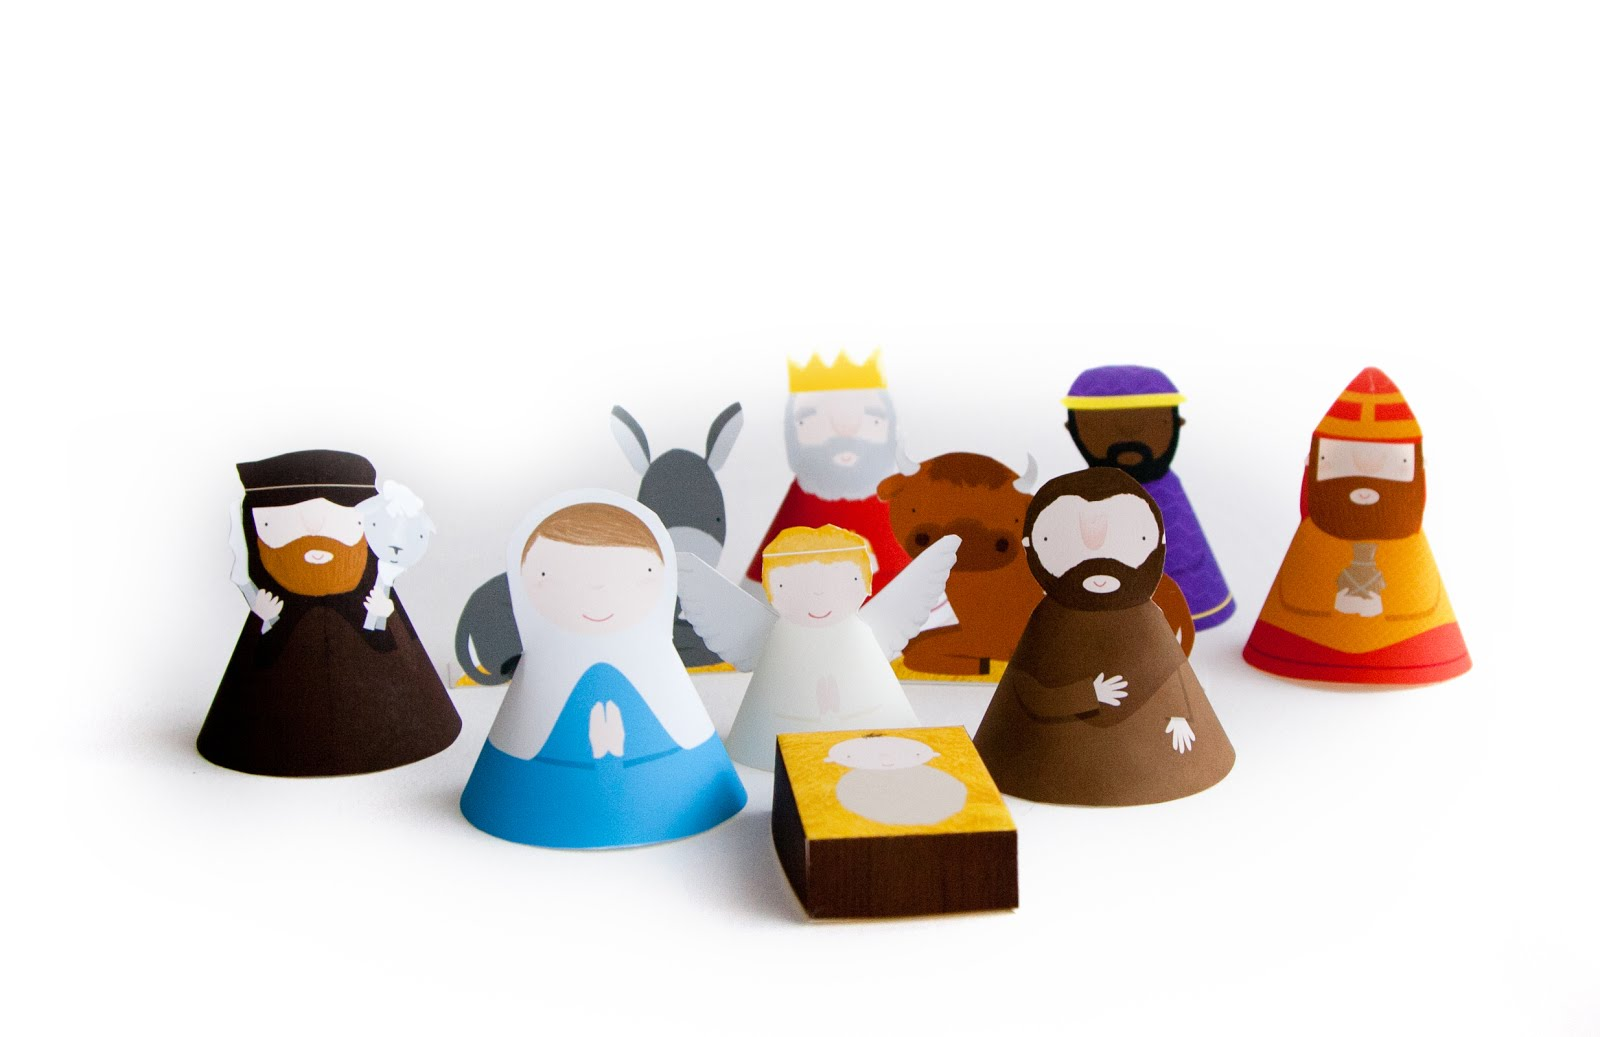 Marloes de vries blog diy make your own nativity set print the 2 pages on thick paper or thin cardboard set your print quality to high for better details cut out the figures glue them and voila solutioingenieria Choice Image